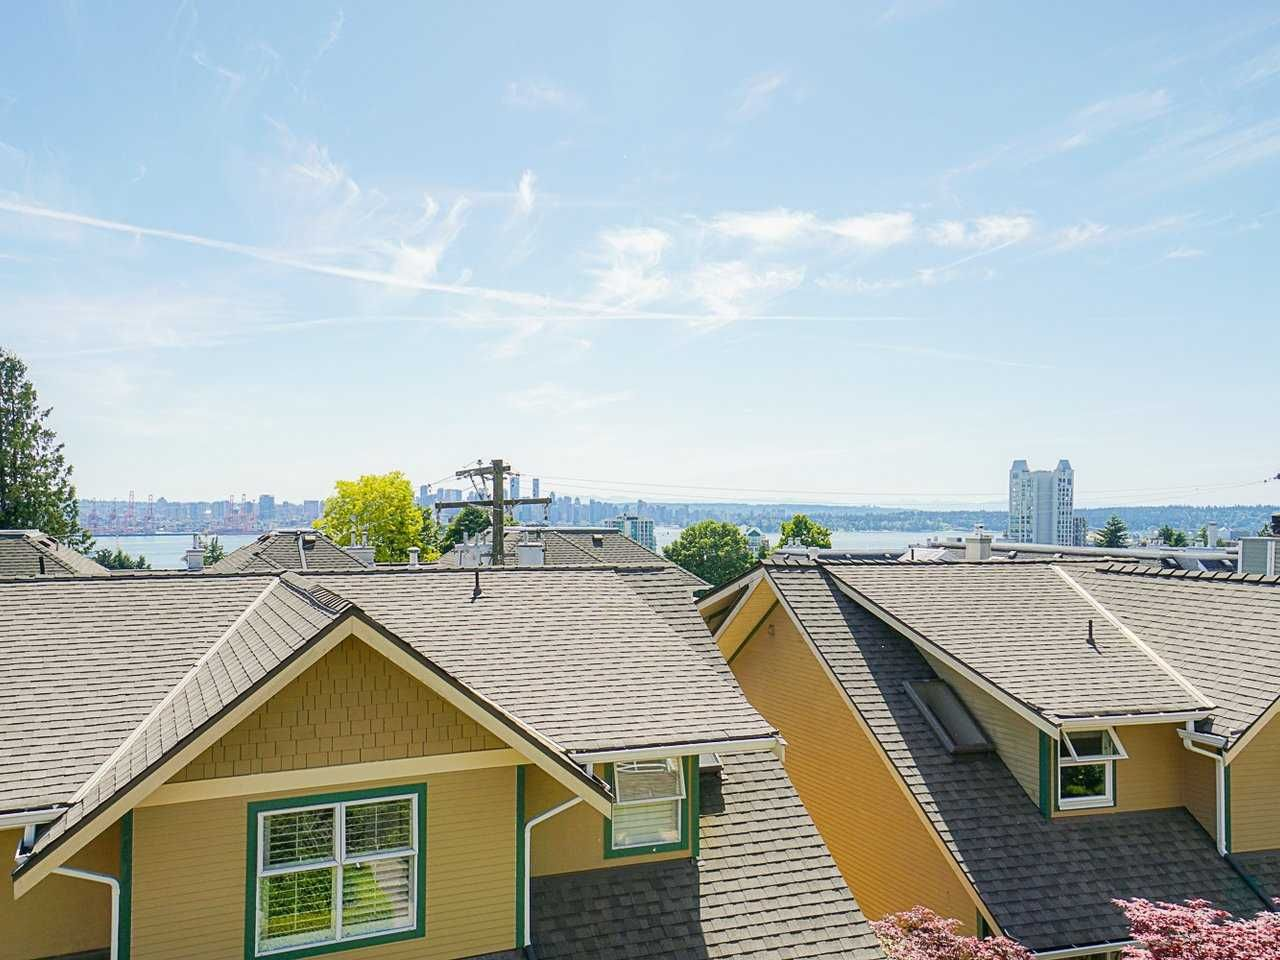 """Photo 38: Photos: 4 235 E KEITH Road in North Vancouver: Lower Lonsdale Townhouse for sale in """"Carriage Hill"""" : MLS®# R2471169"""